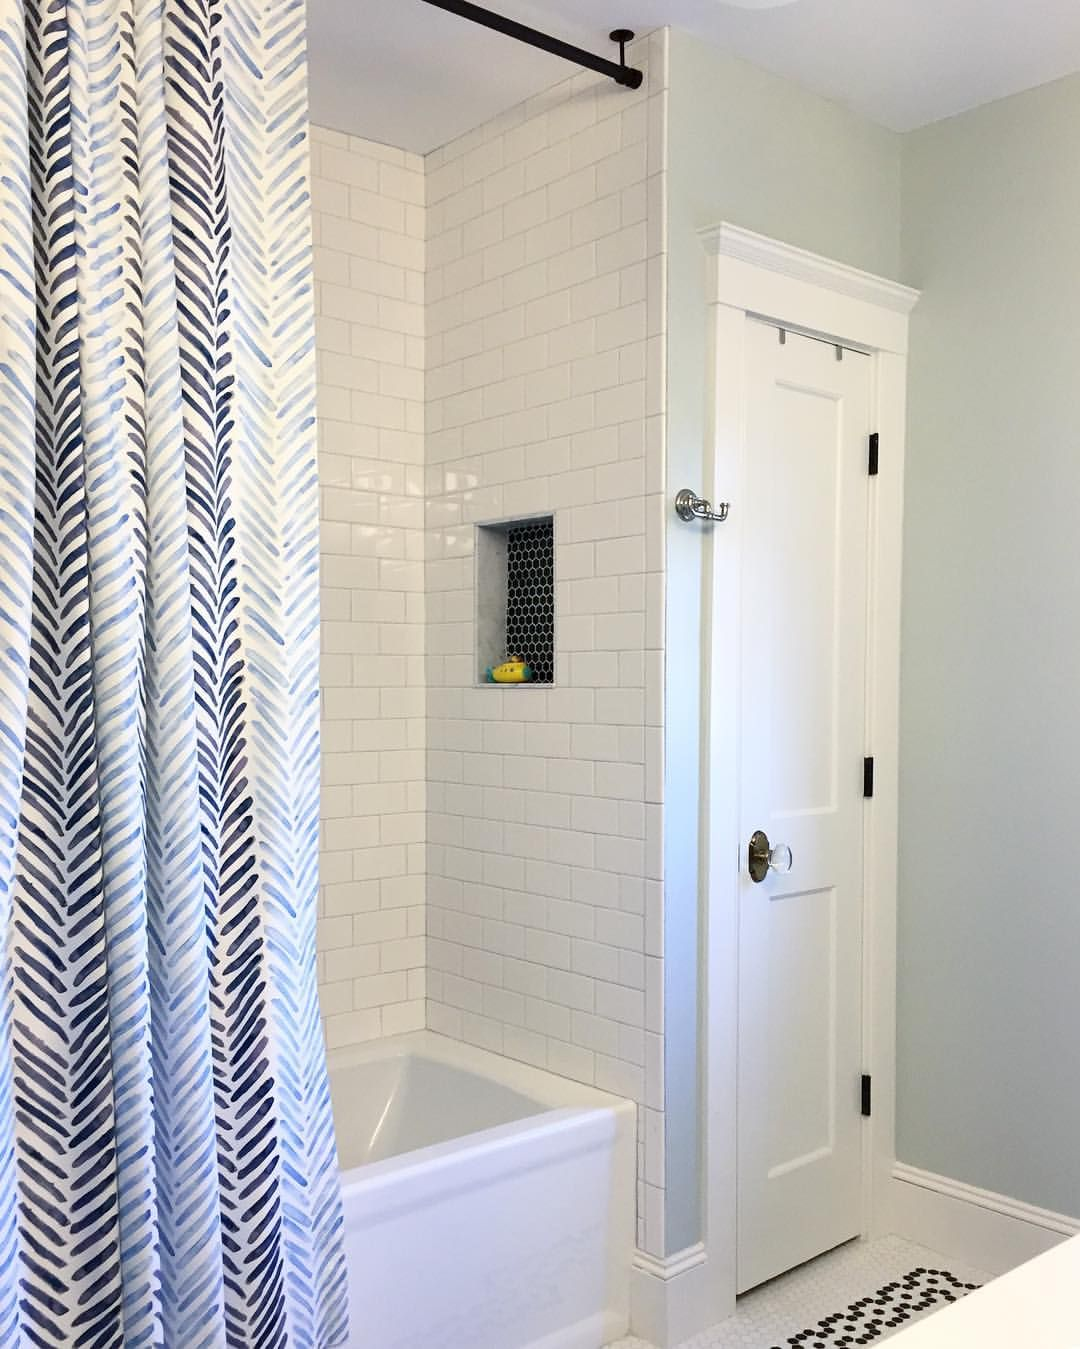 Mounting Curtain Rods Pin By Do It Yesterday On Bathroom In 2019 Cool Shower Curtains